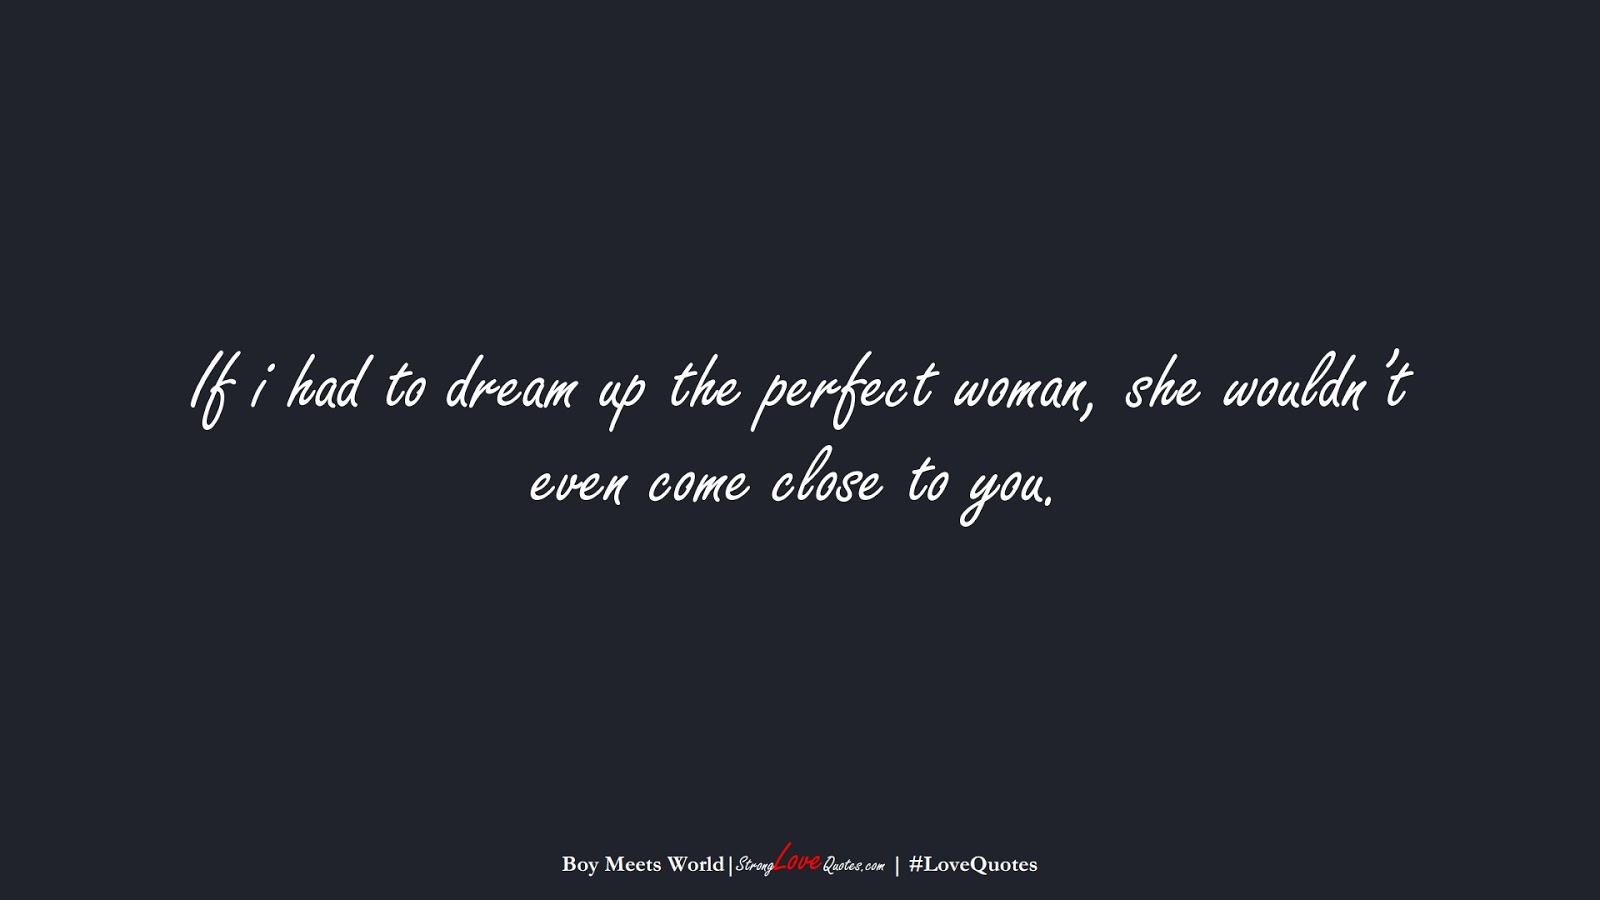 If i had to dream up the perfect woman, she wouldn't even come close to you. (Boy Meets World);  #LoveQuotes